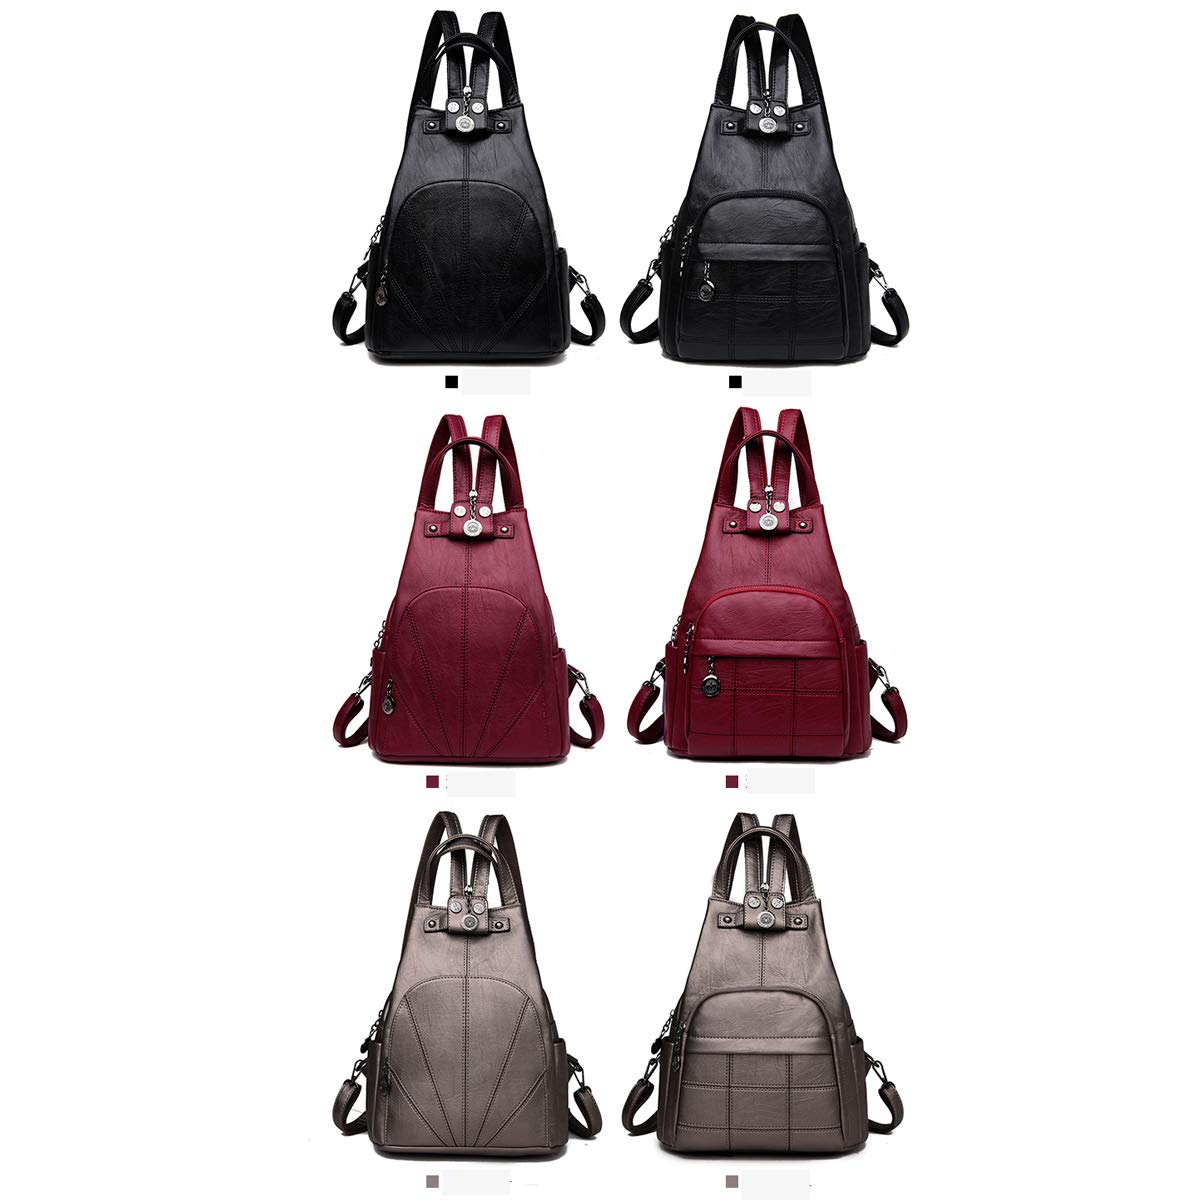 Sleek and Simple. Two Styles of Three Colors PU Leather Haoyushangmao Girls Multi-Purpose Backpack for Daily Travel//Outdoor//Travel//School//Work//Fashion//Leisure